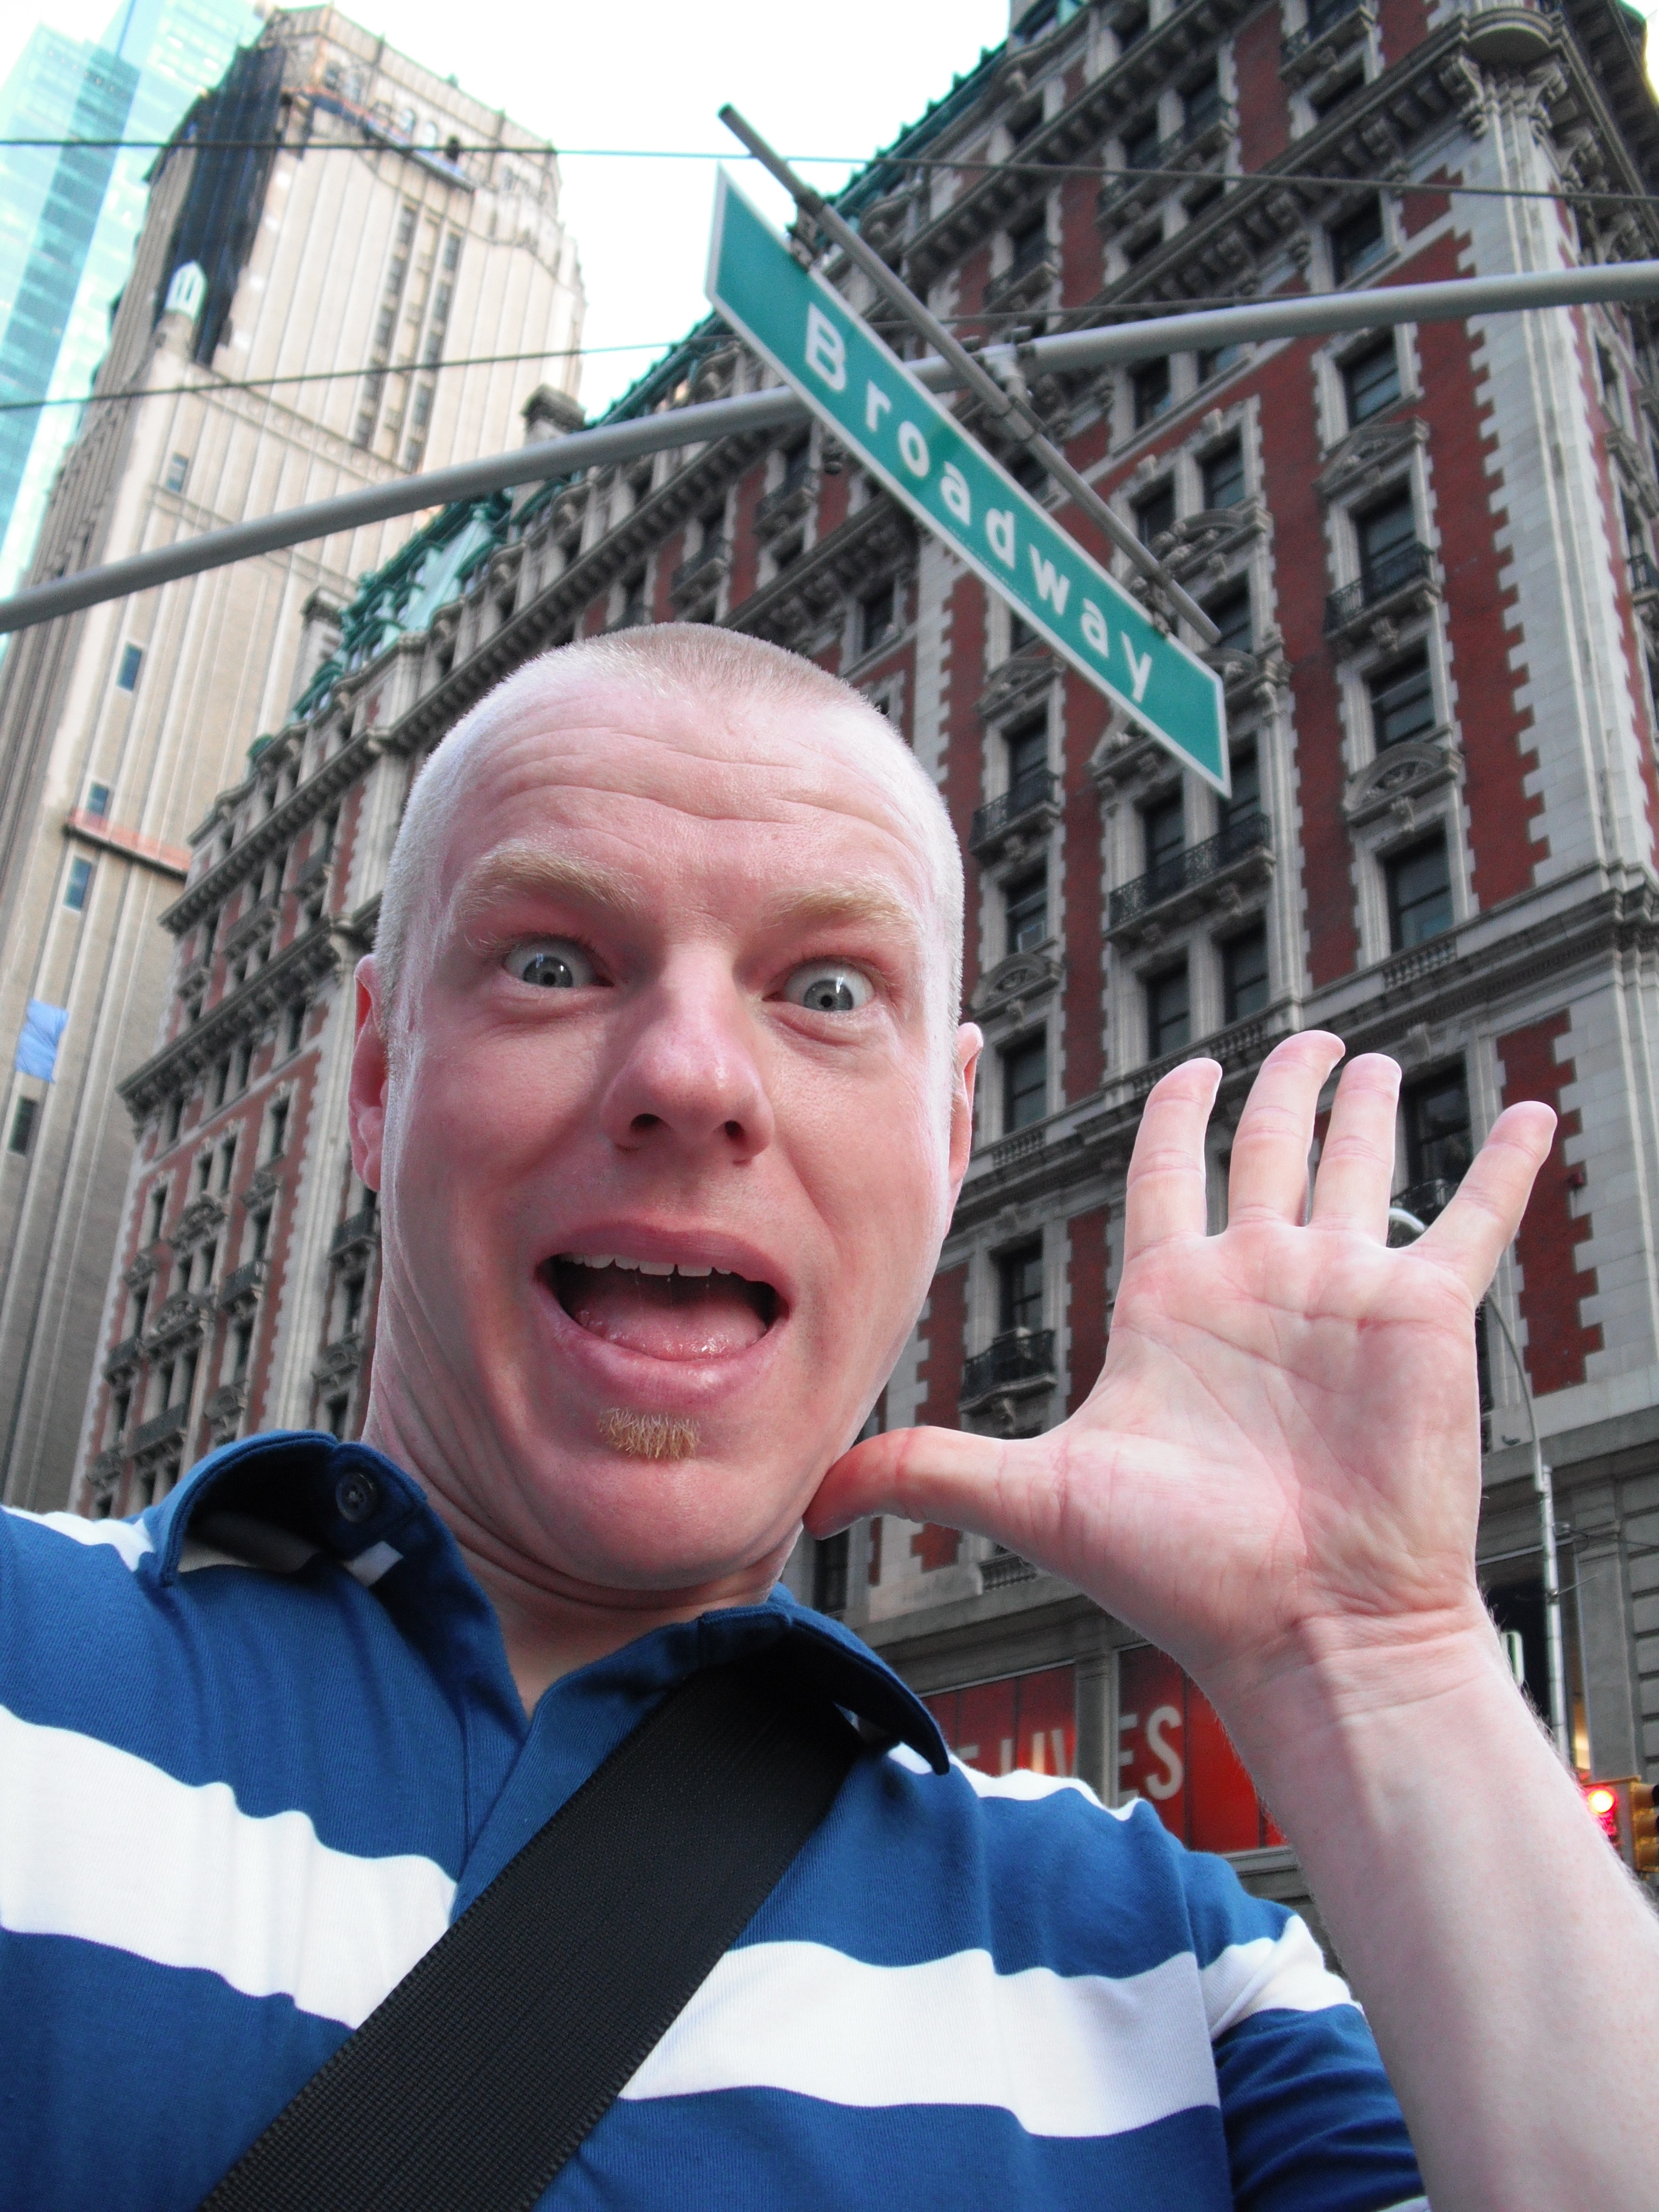 on Broadway!  I was just trying to give a Broadway pose.  I just look crazed.  It was fun trying to get this shot...